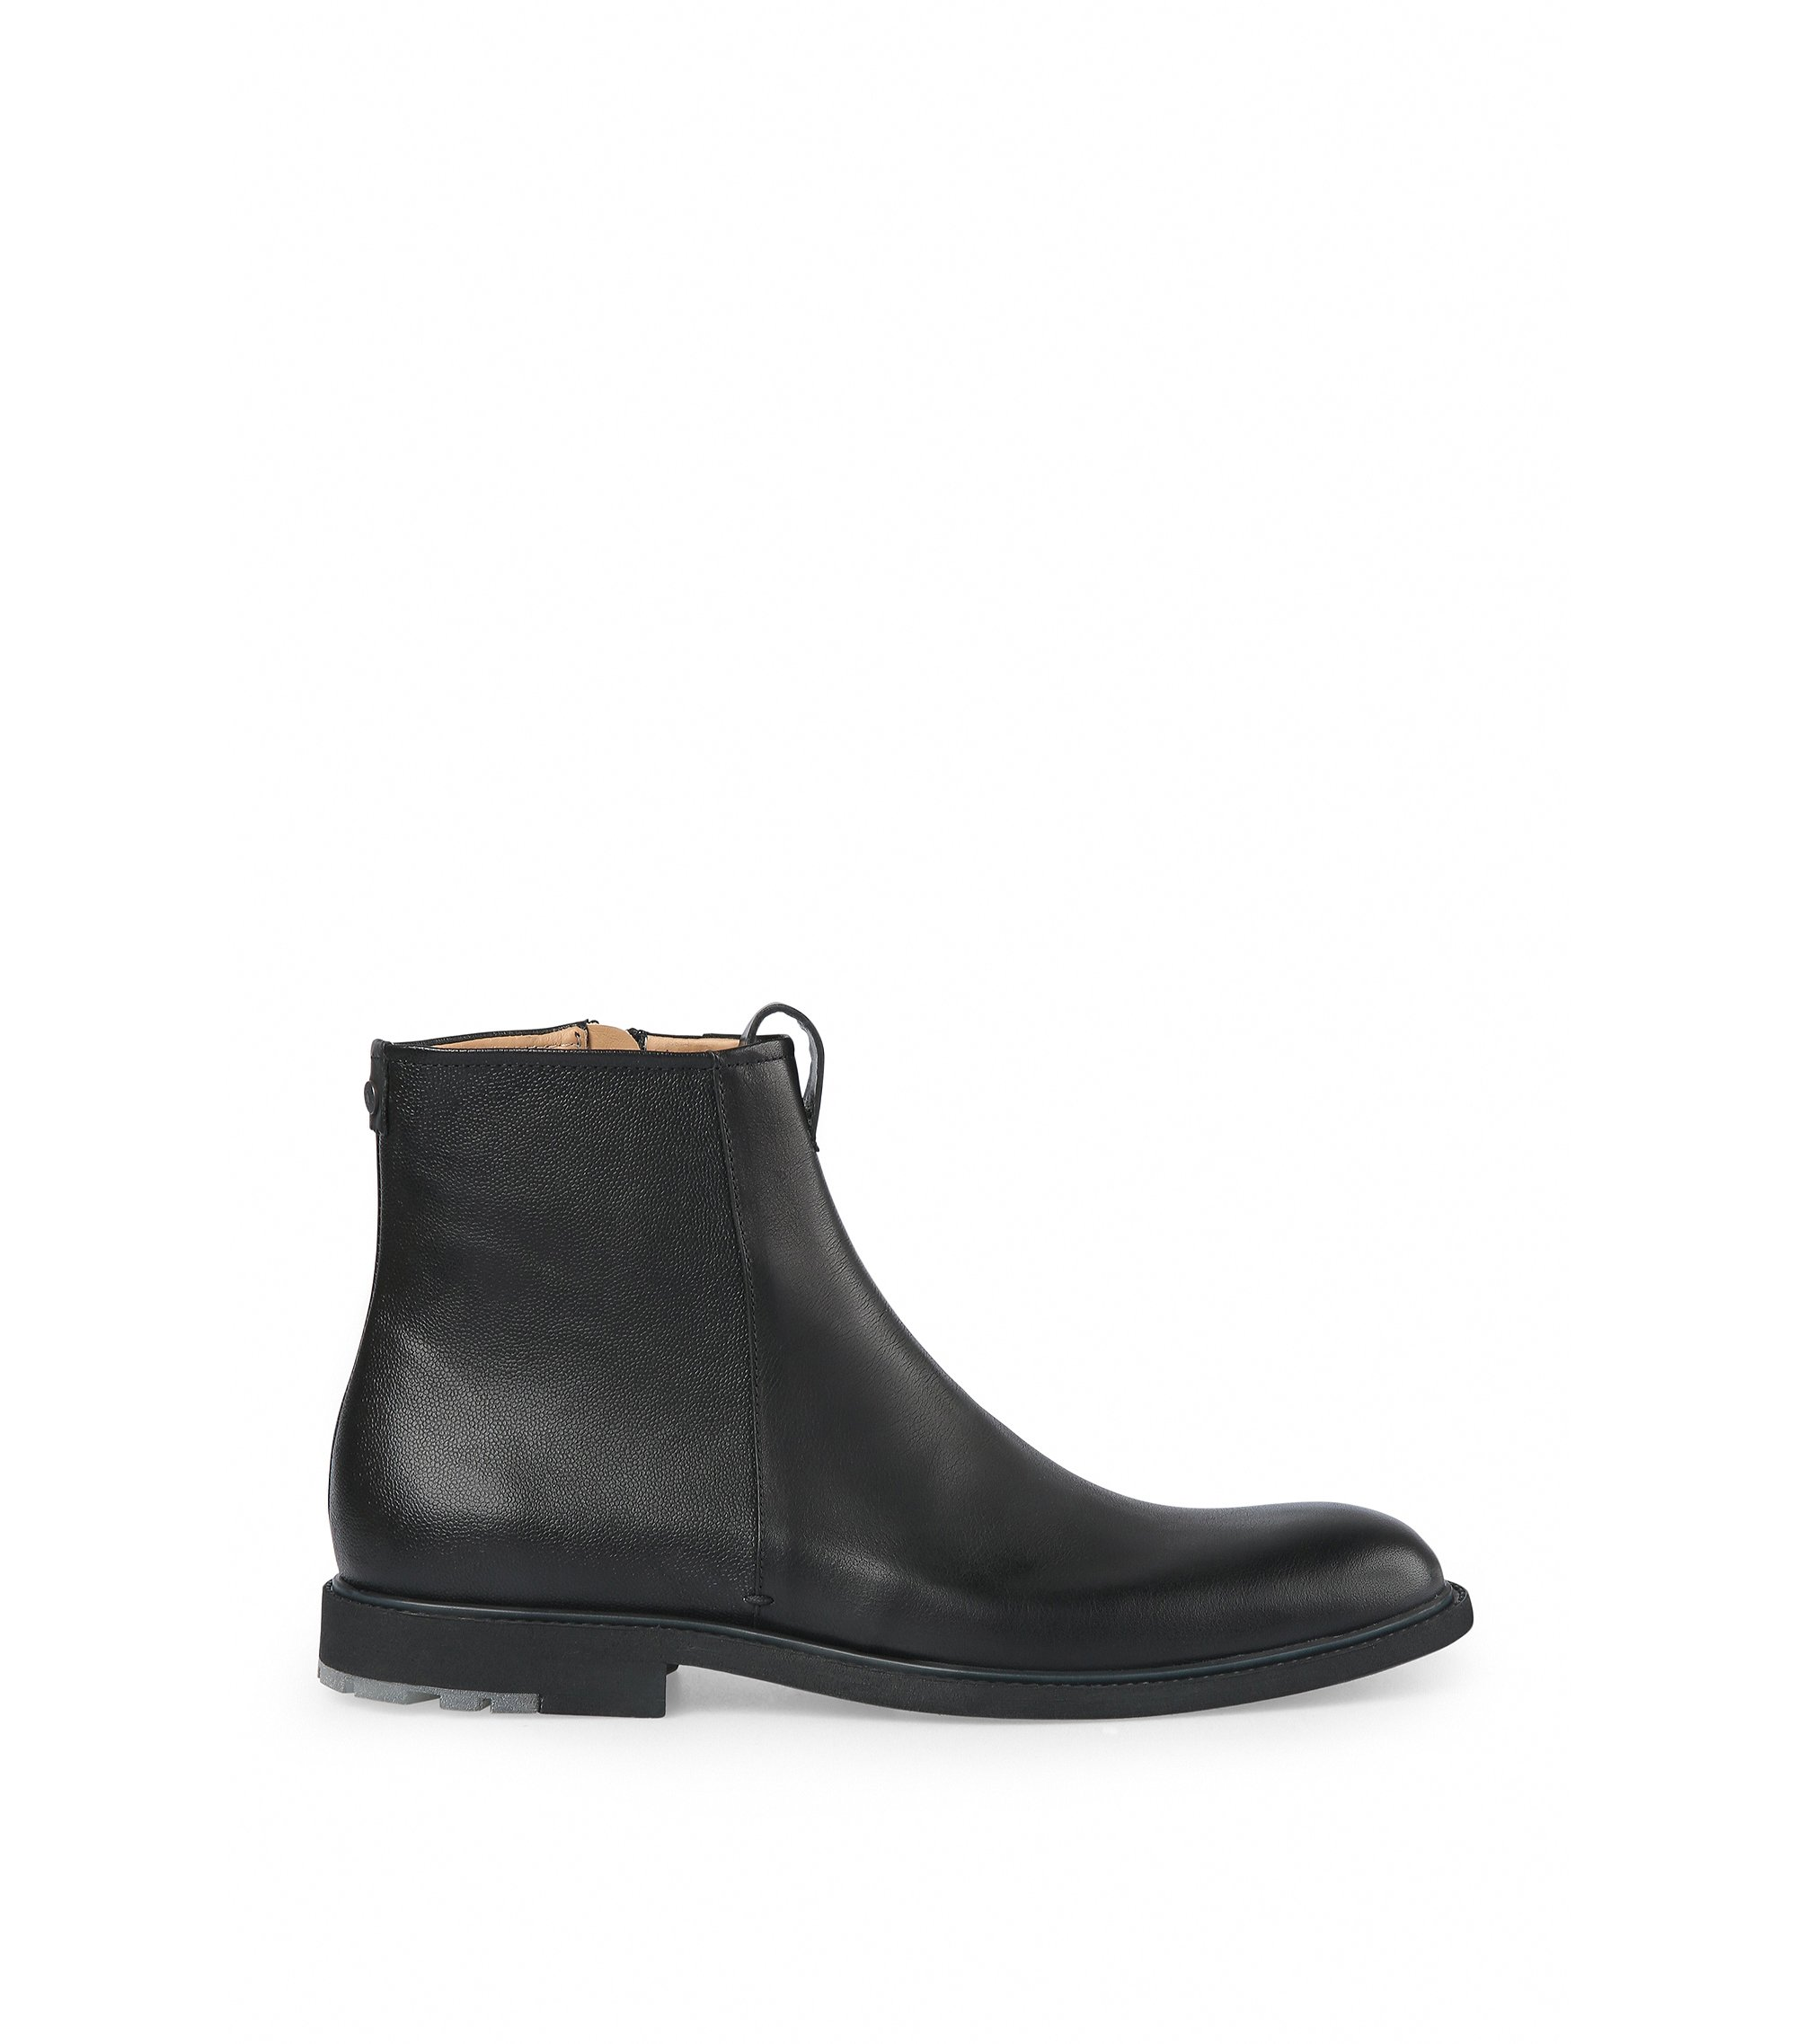 Leather Ankle Boot | Cultroot Zipb Itwsgr, Black